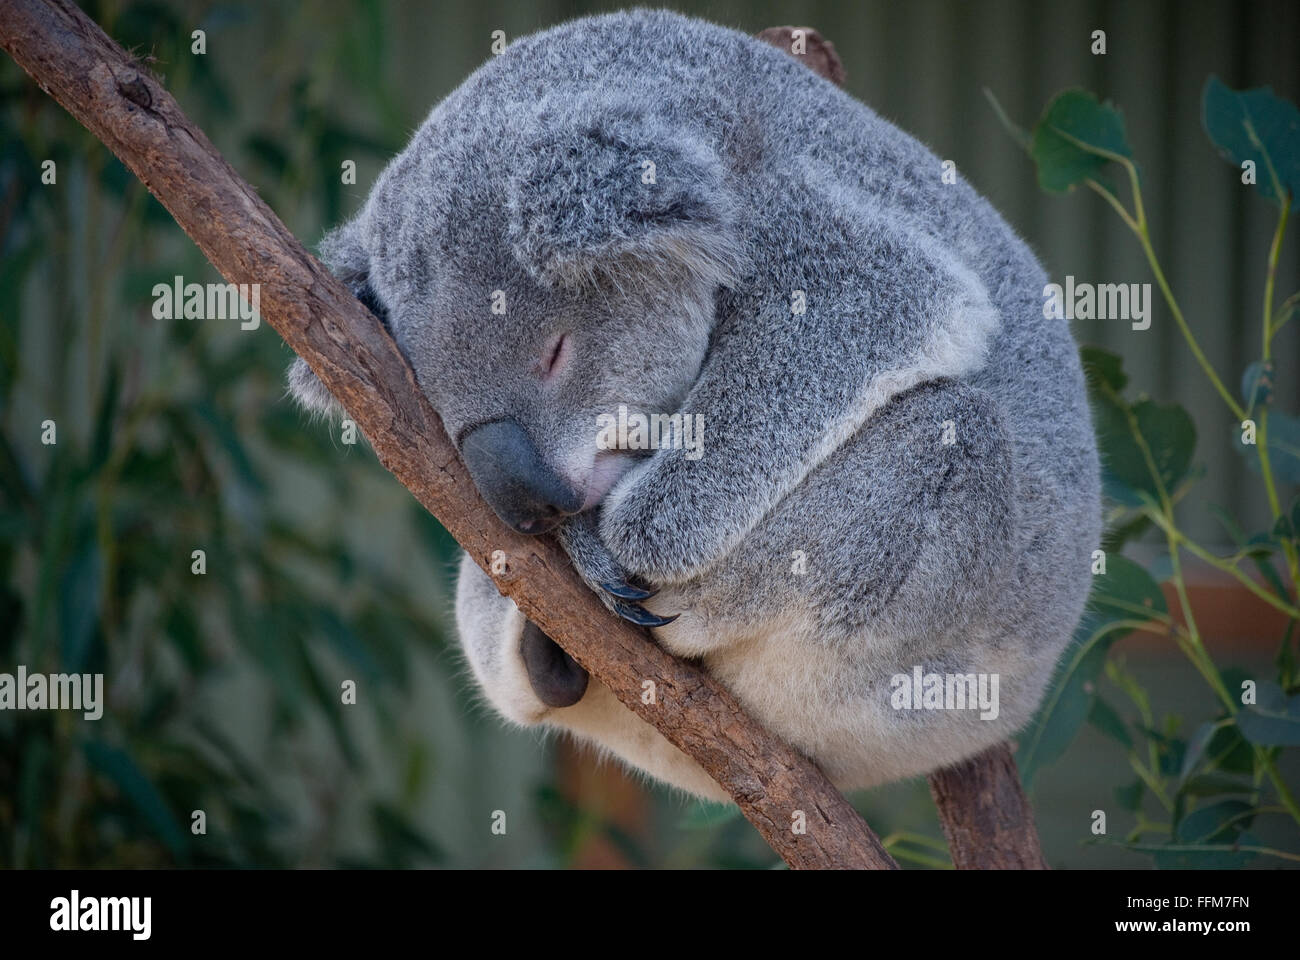 Koala is sleeping on a tree - Stock Image